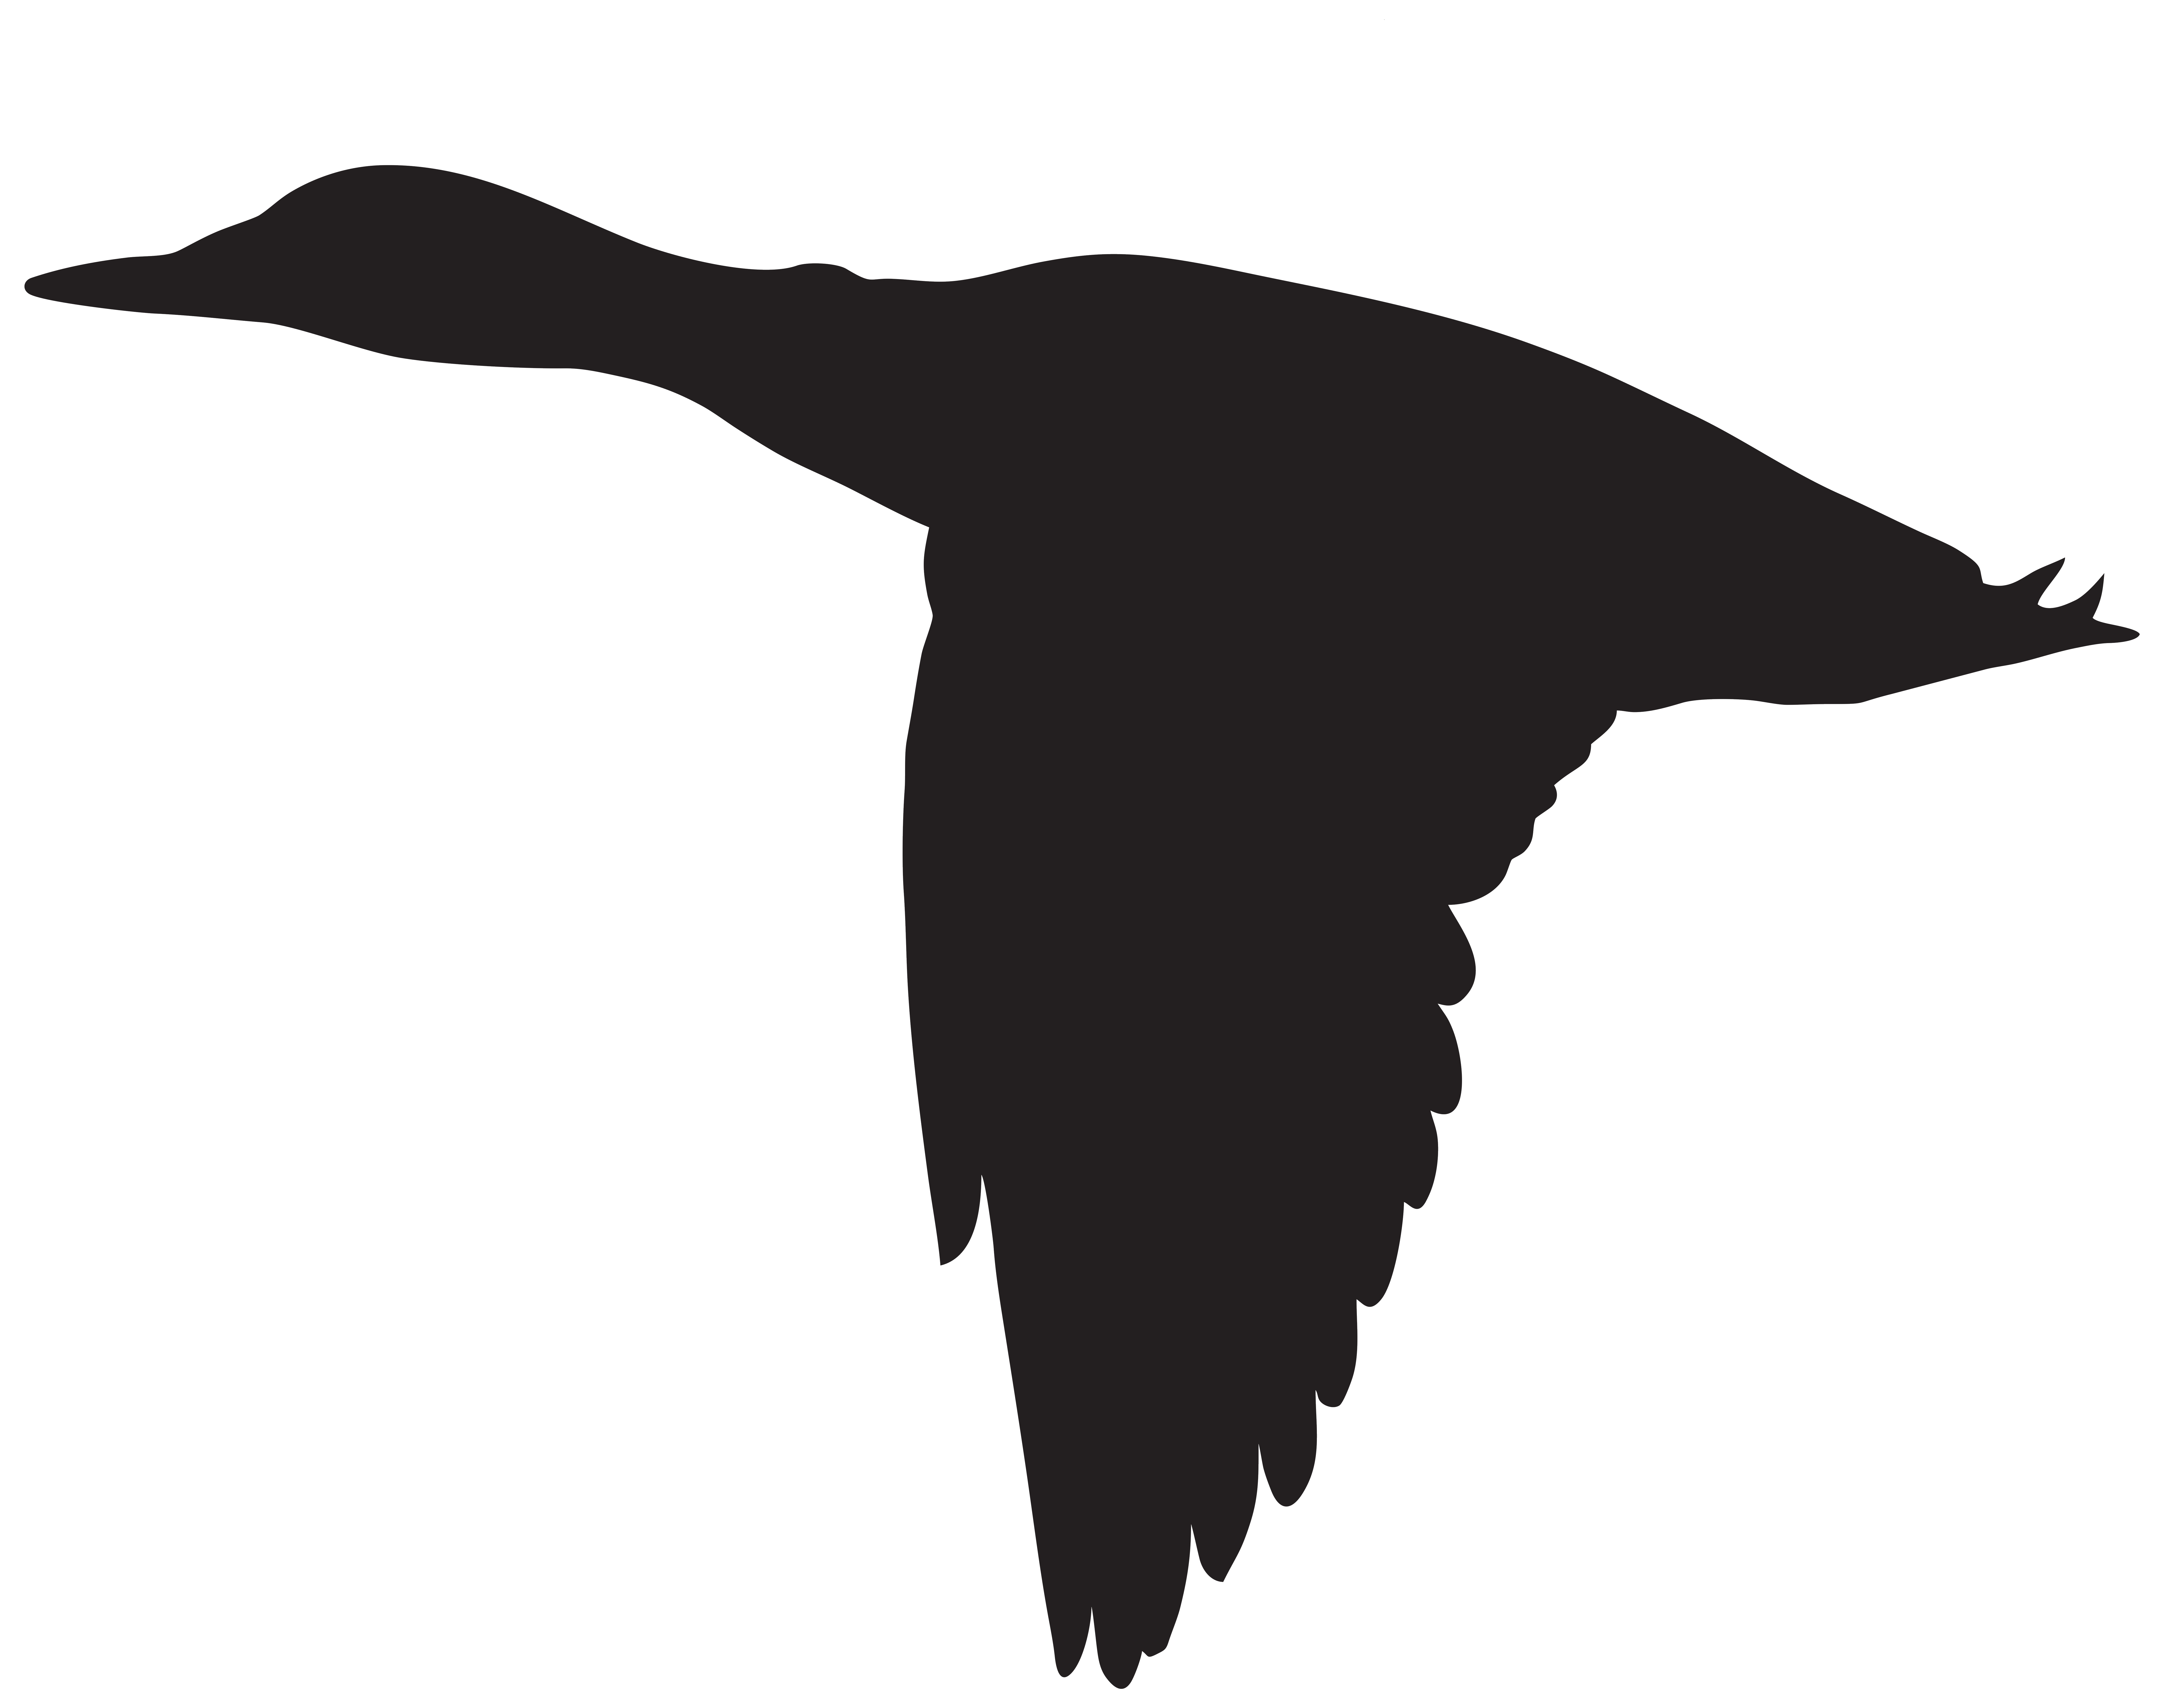 Ducks clipart fat duck. Flying silhouette png clip